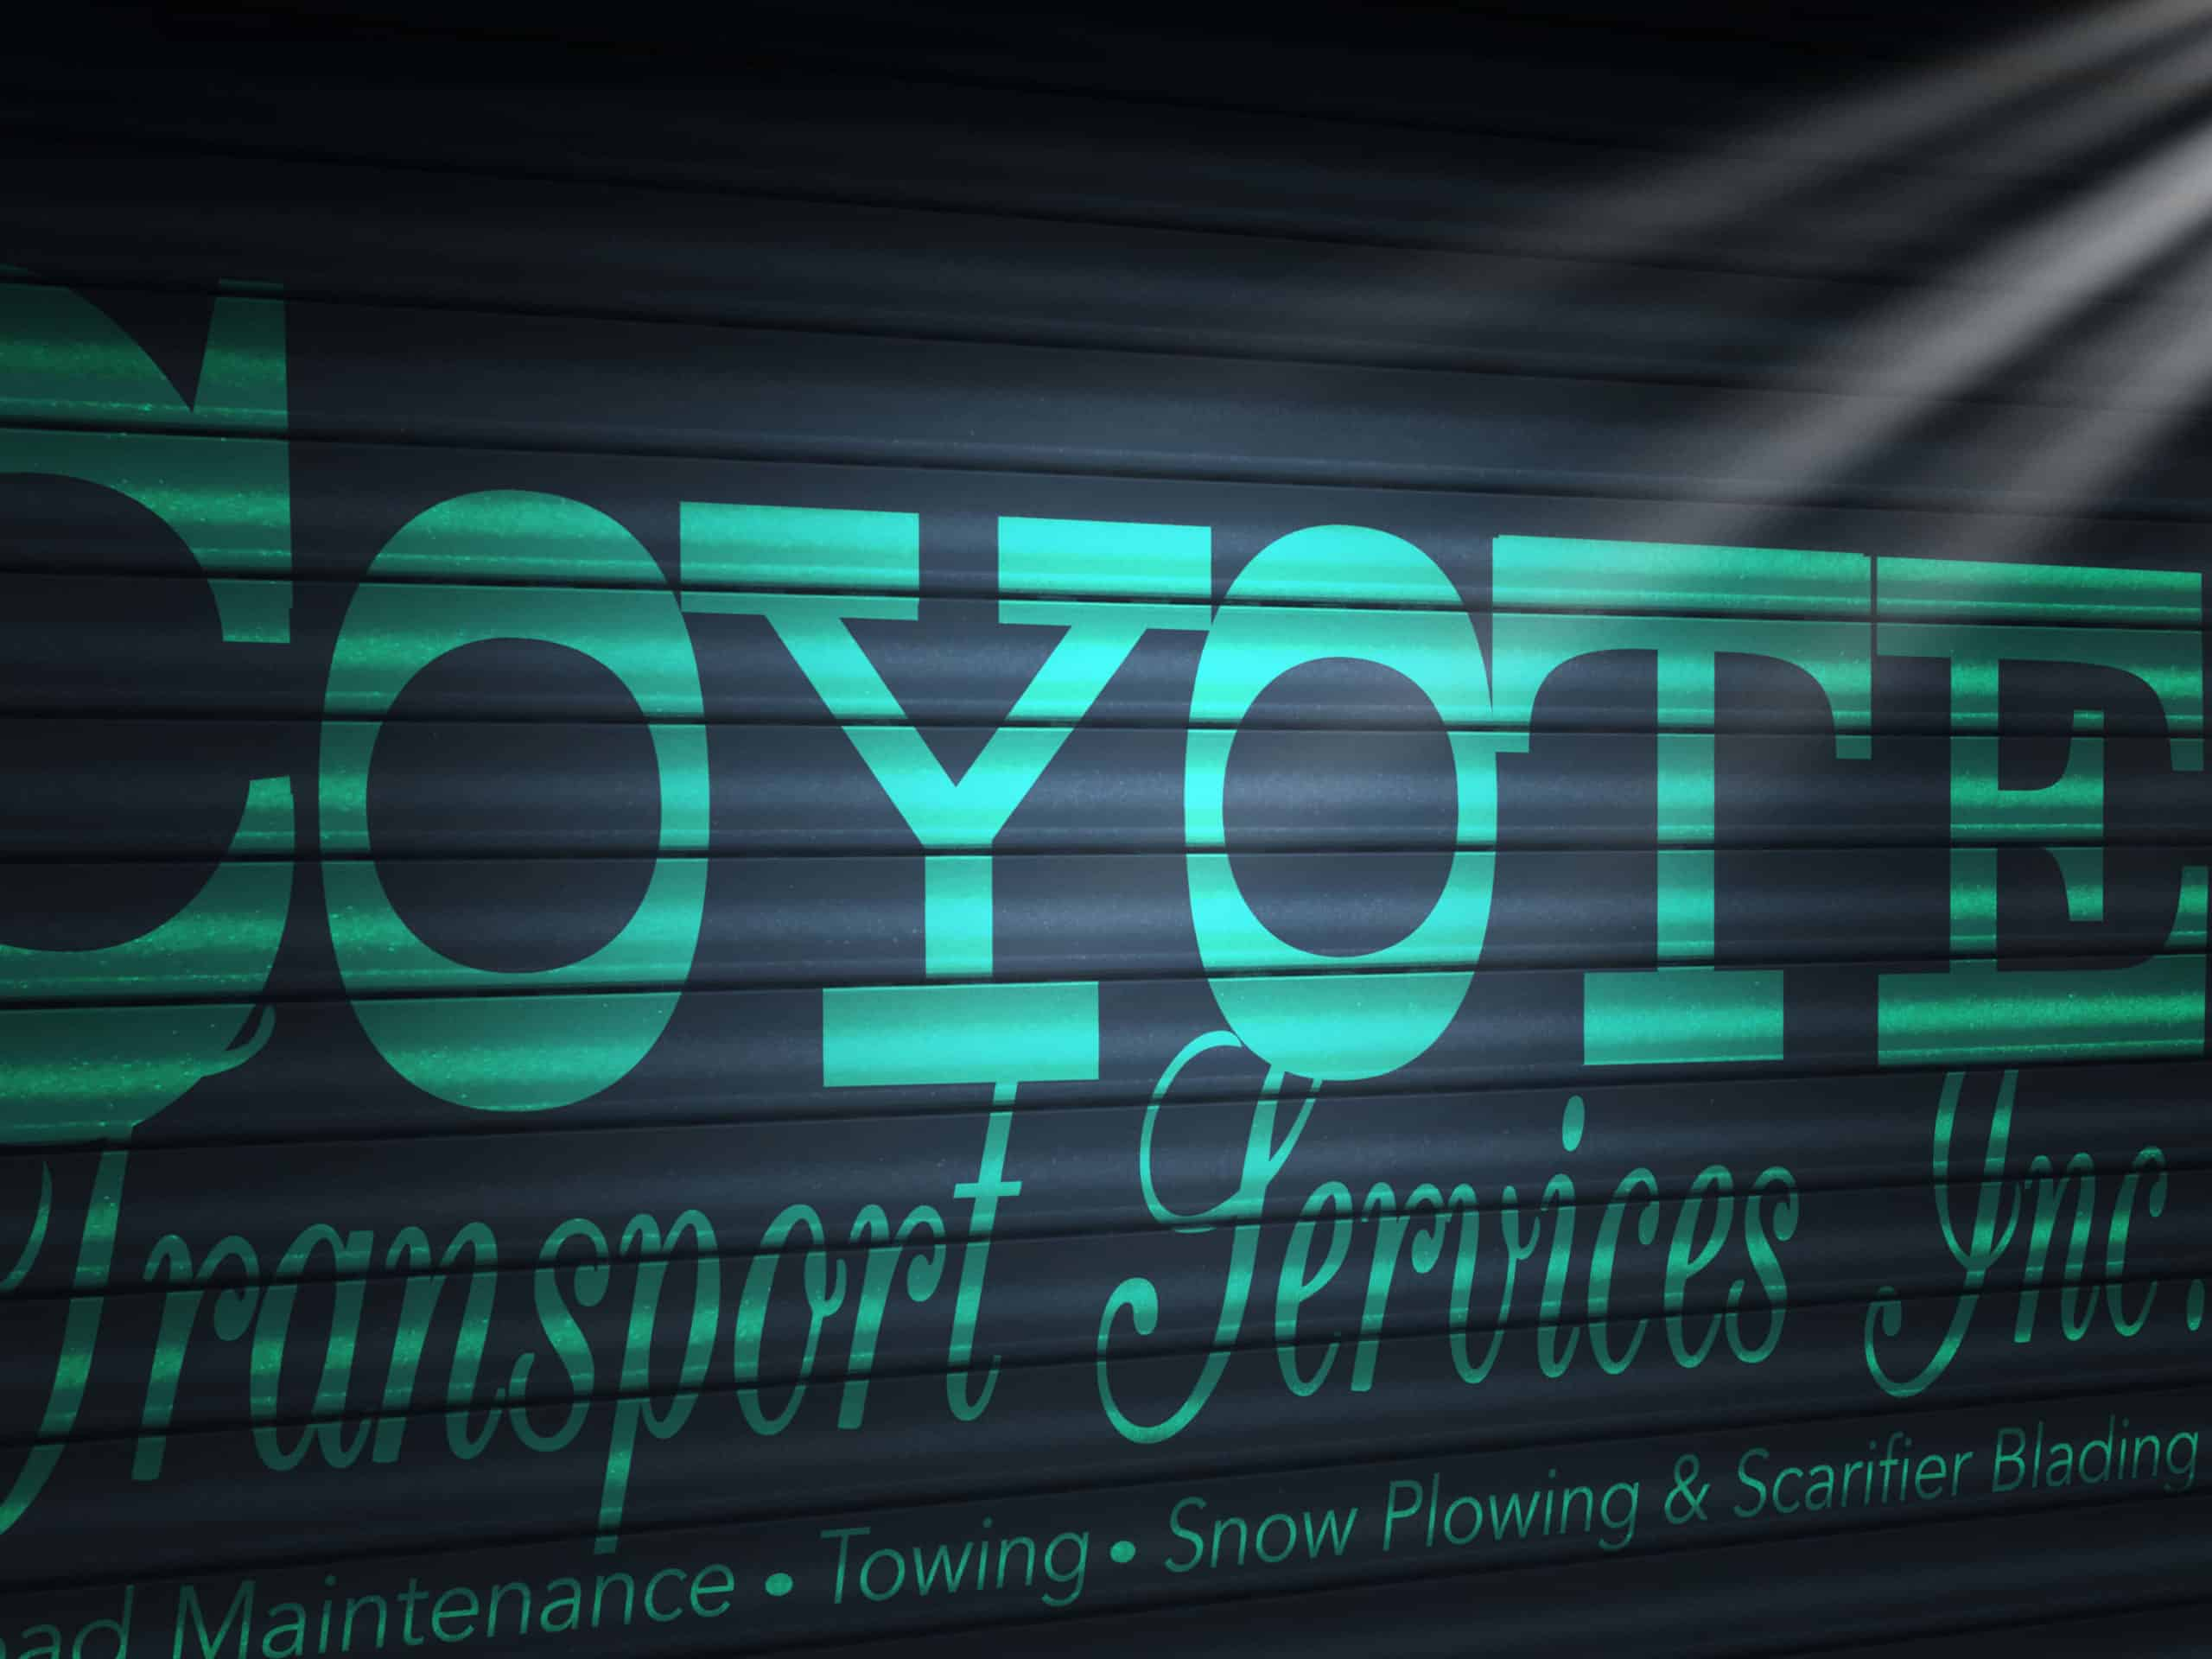 Coyote Transport Services Inc. logo in green mounted on garage door